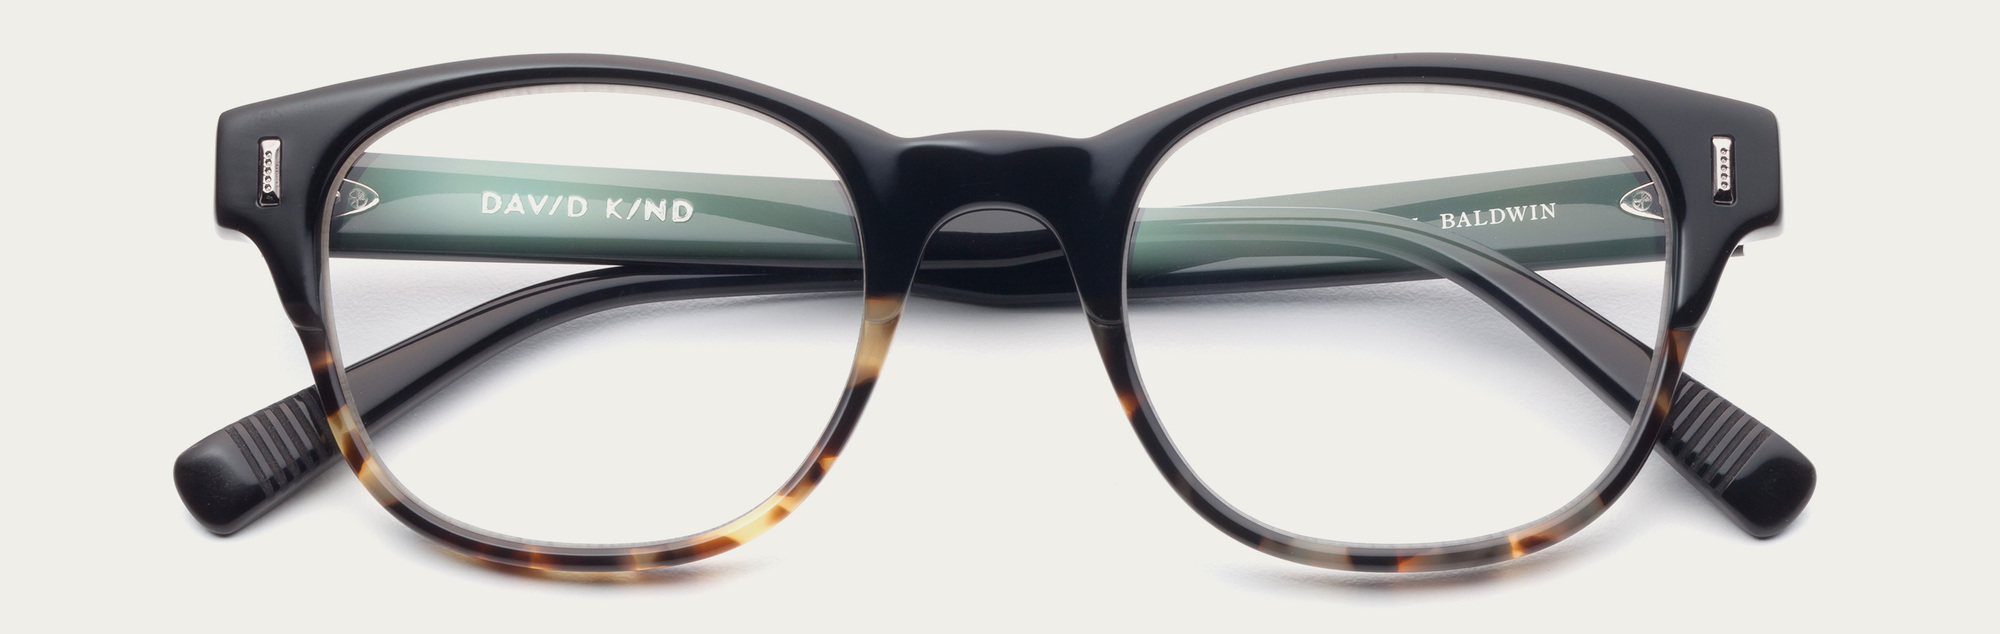 Baldwin // DAVID KIND - Online eyewear, RX eyeglasses ...